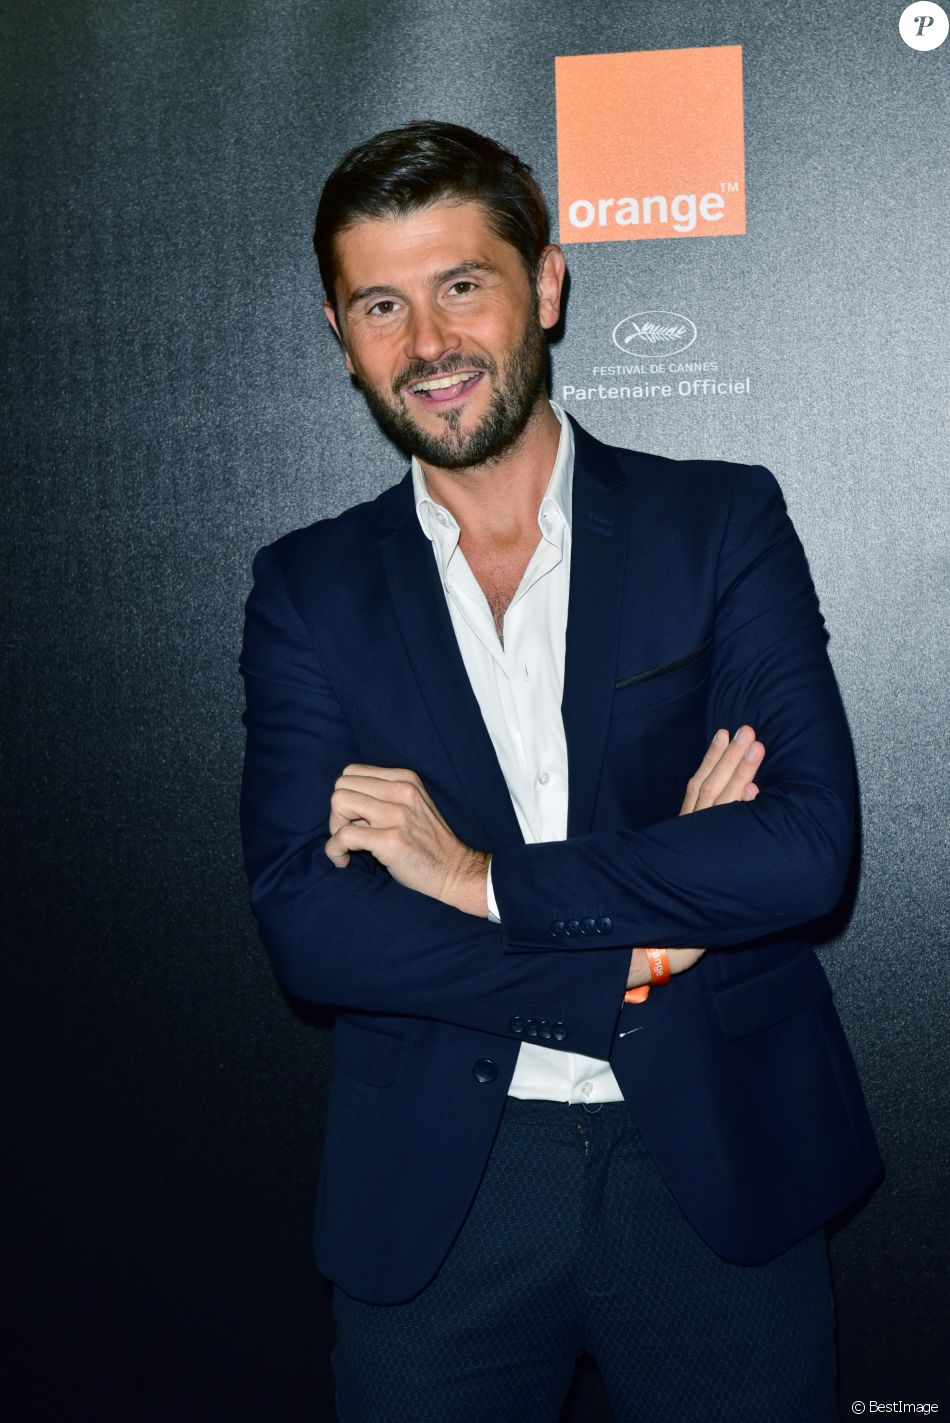 Christophe Beaugrand - Soirée Orange Cinéma sur la plage du Majestic lors du 70ème Festival International du Film de Cannes, France, le 20 mai 2017. © Giancarlo Gorassini/Bestimage